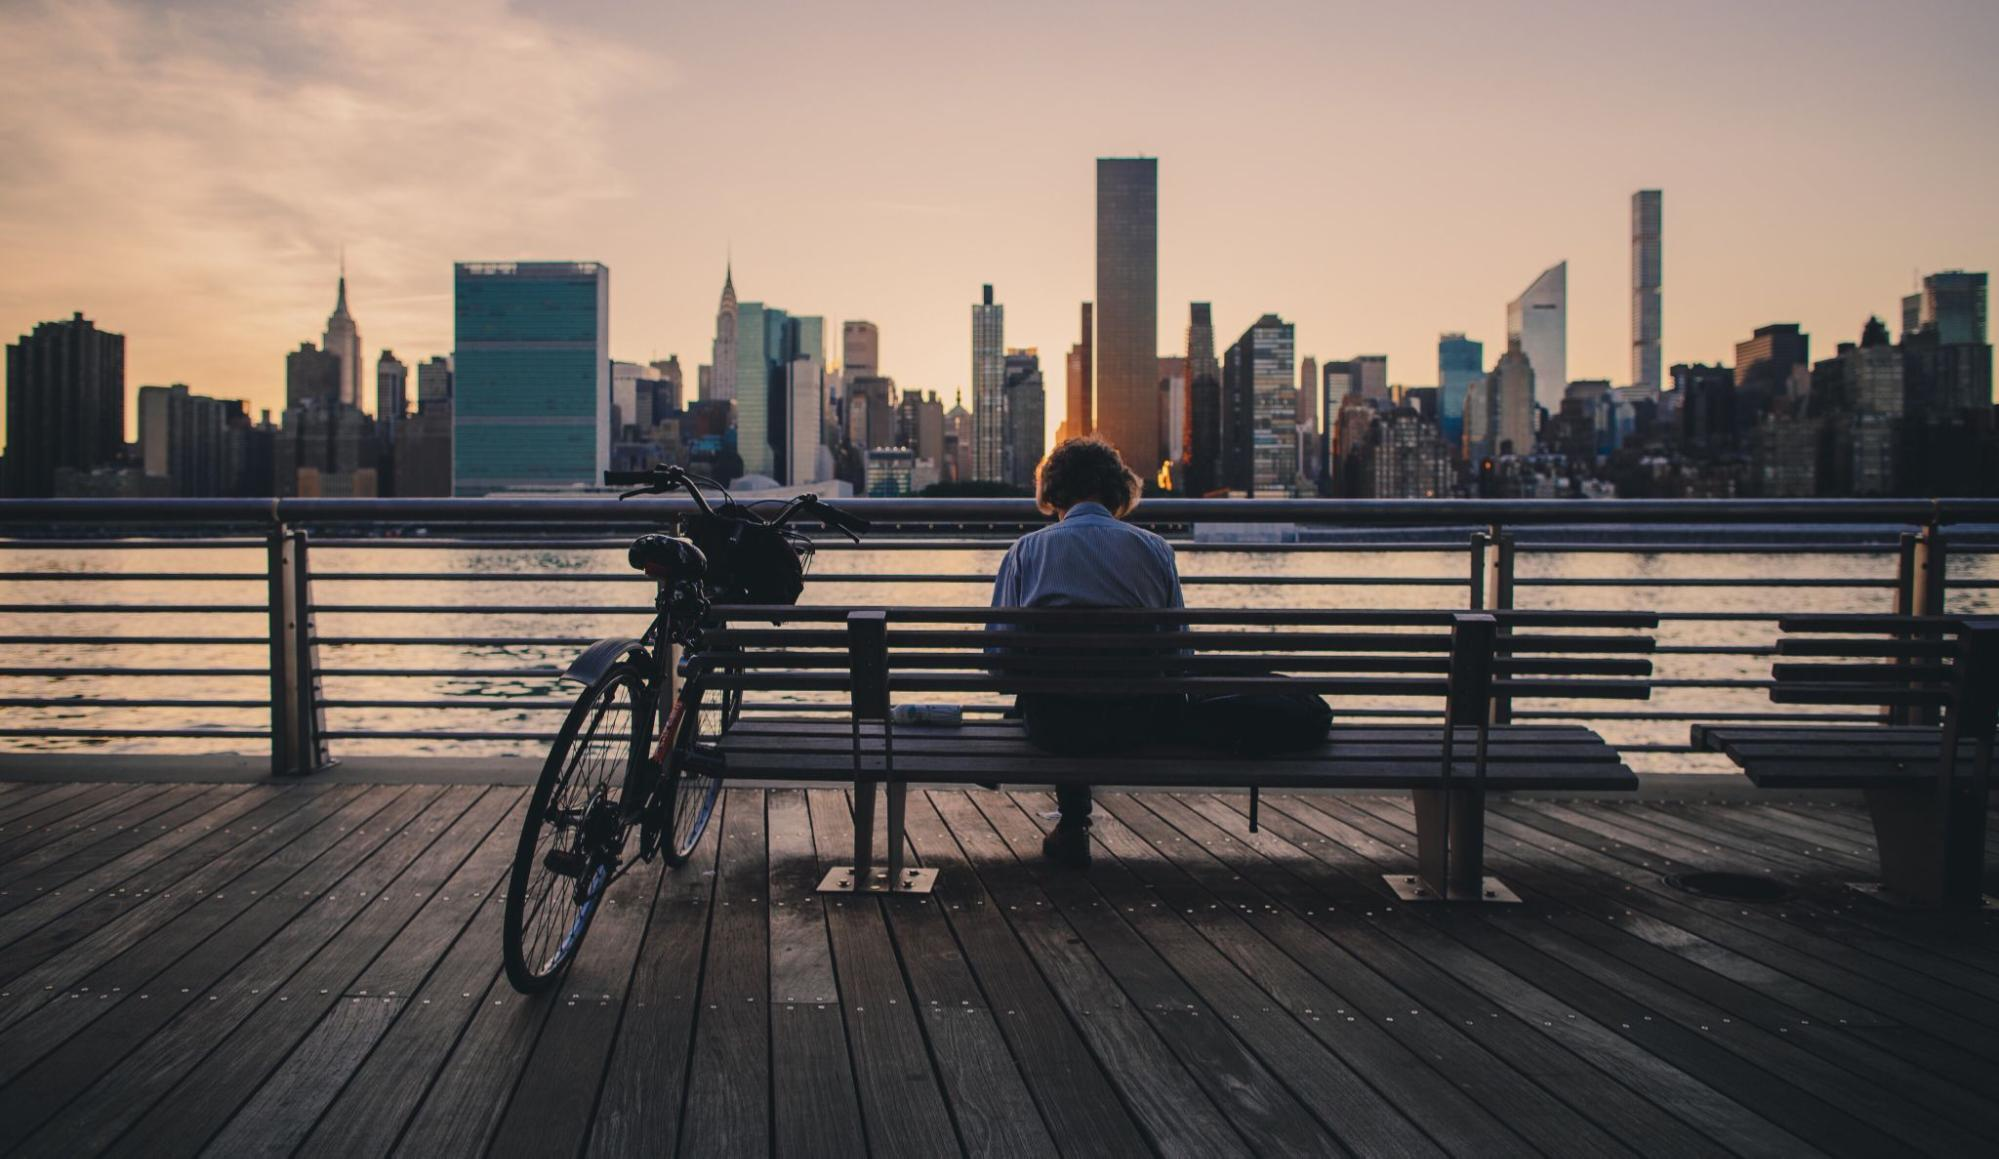 A person sits on a bench overlooking the New York City skyline.